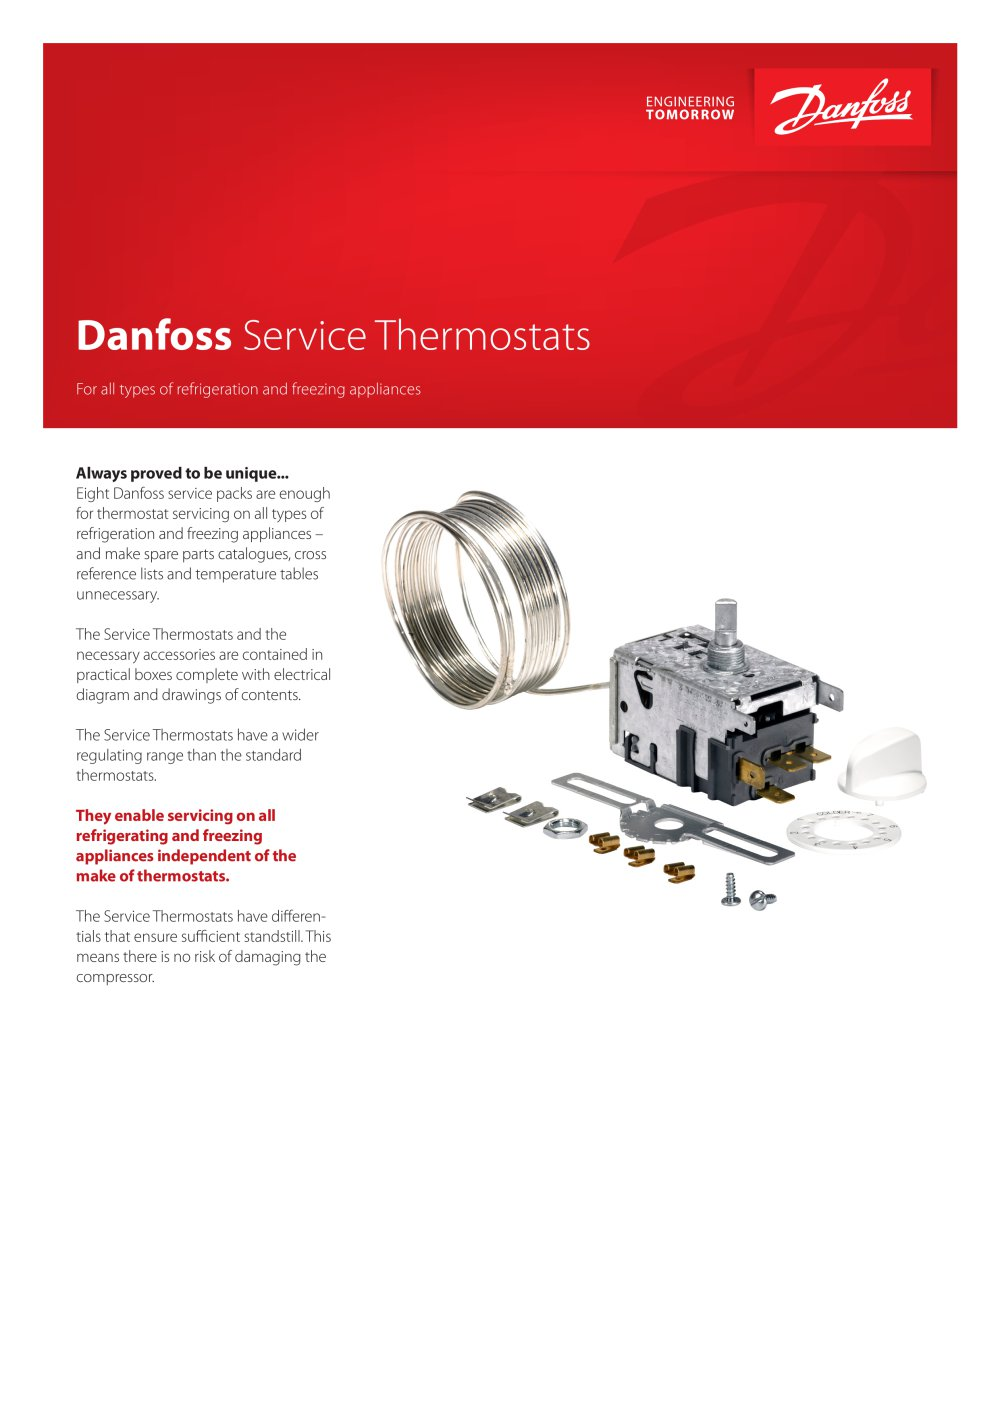 Danfoss Service Thermostats Industrial Automation Pdf Refrigeration Compressor Wiring Diagrams 1 2 Pages